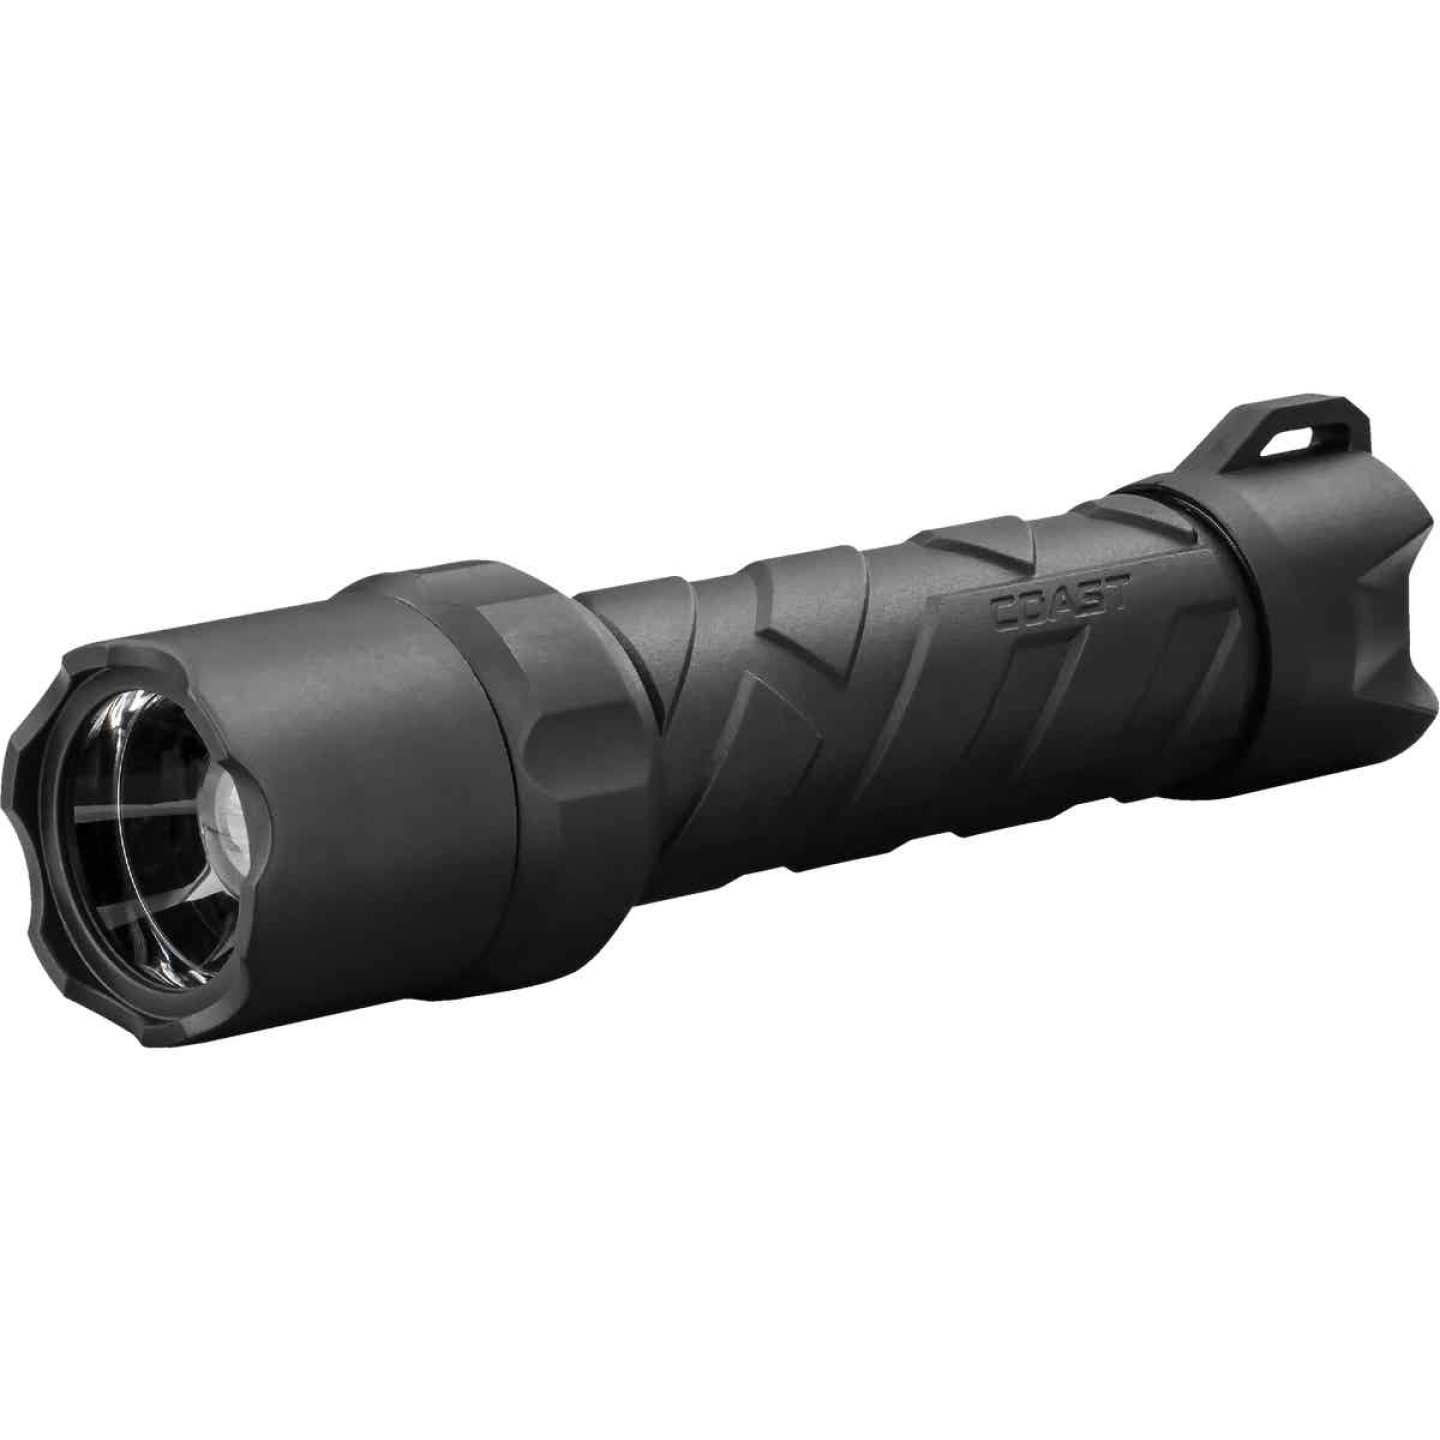 Coast Poly-Nylon/Stainless Steel PS600 LED Flashlight Image 1